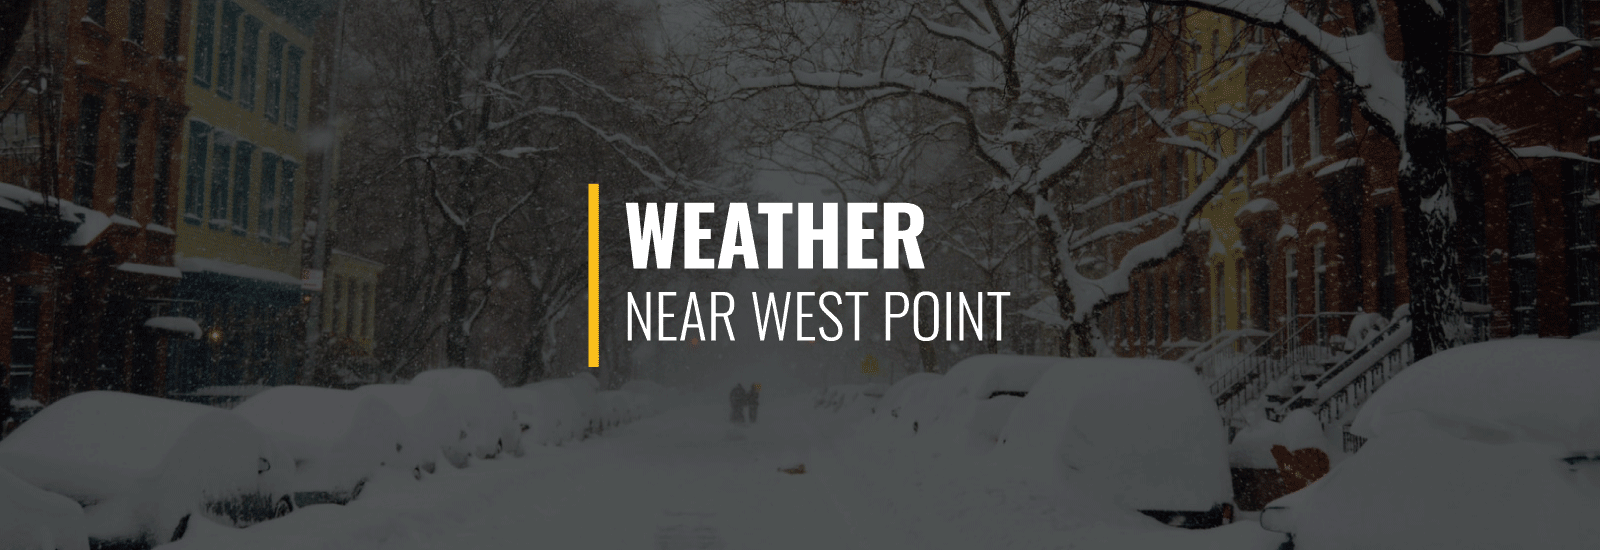 West Point Weather